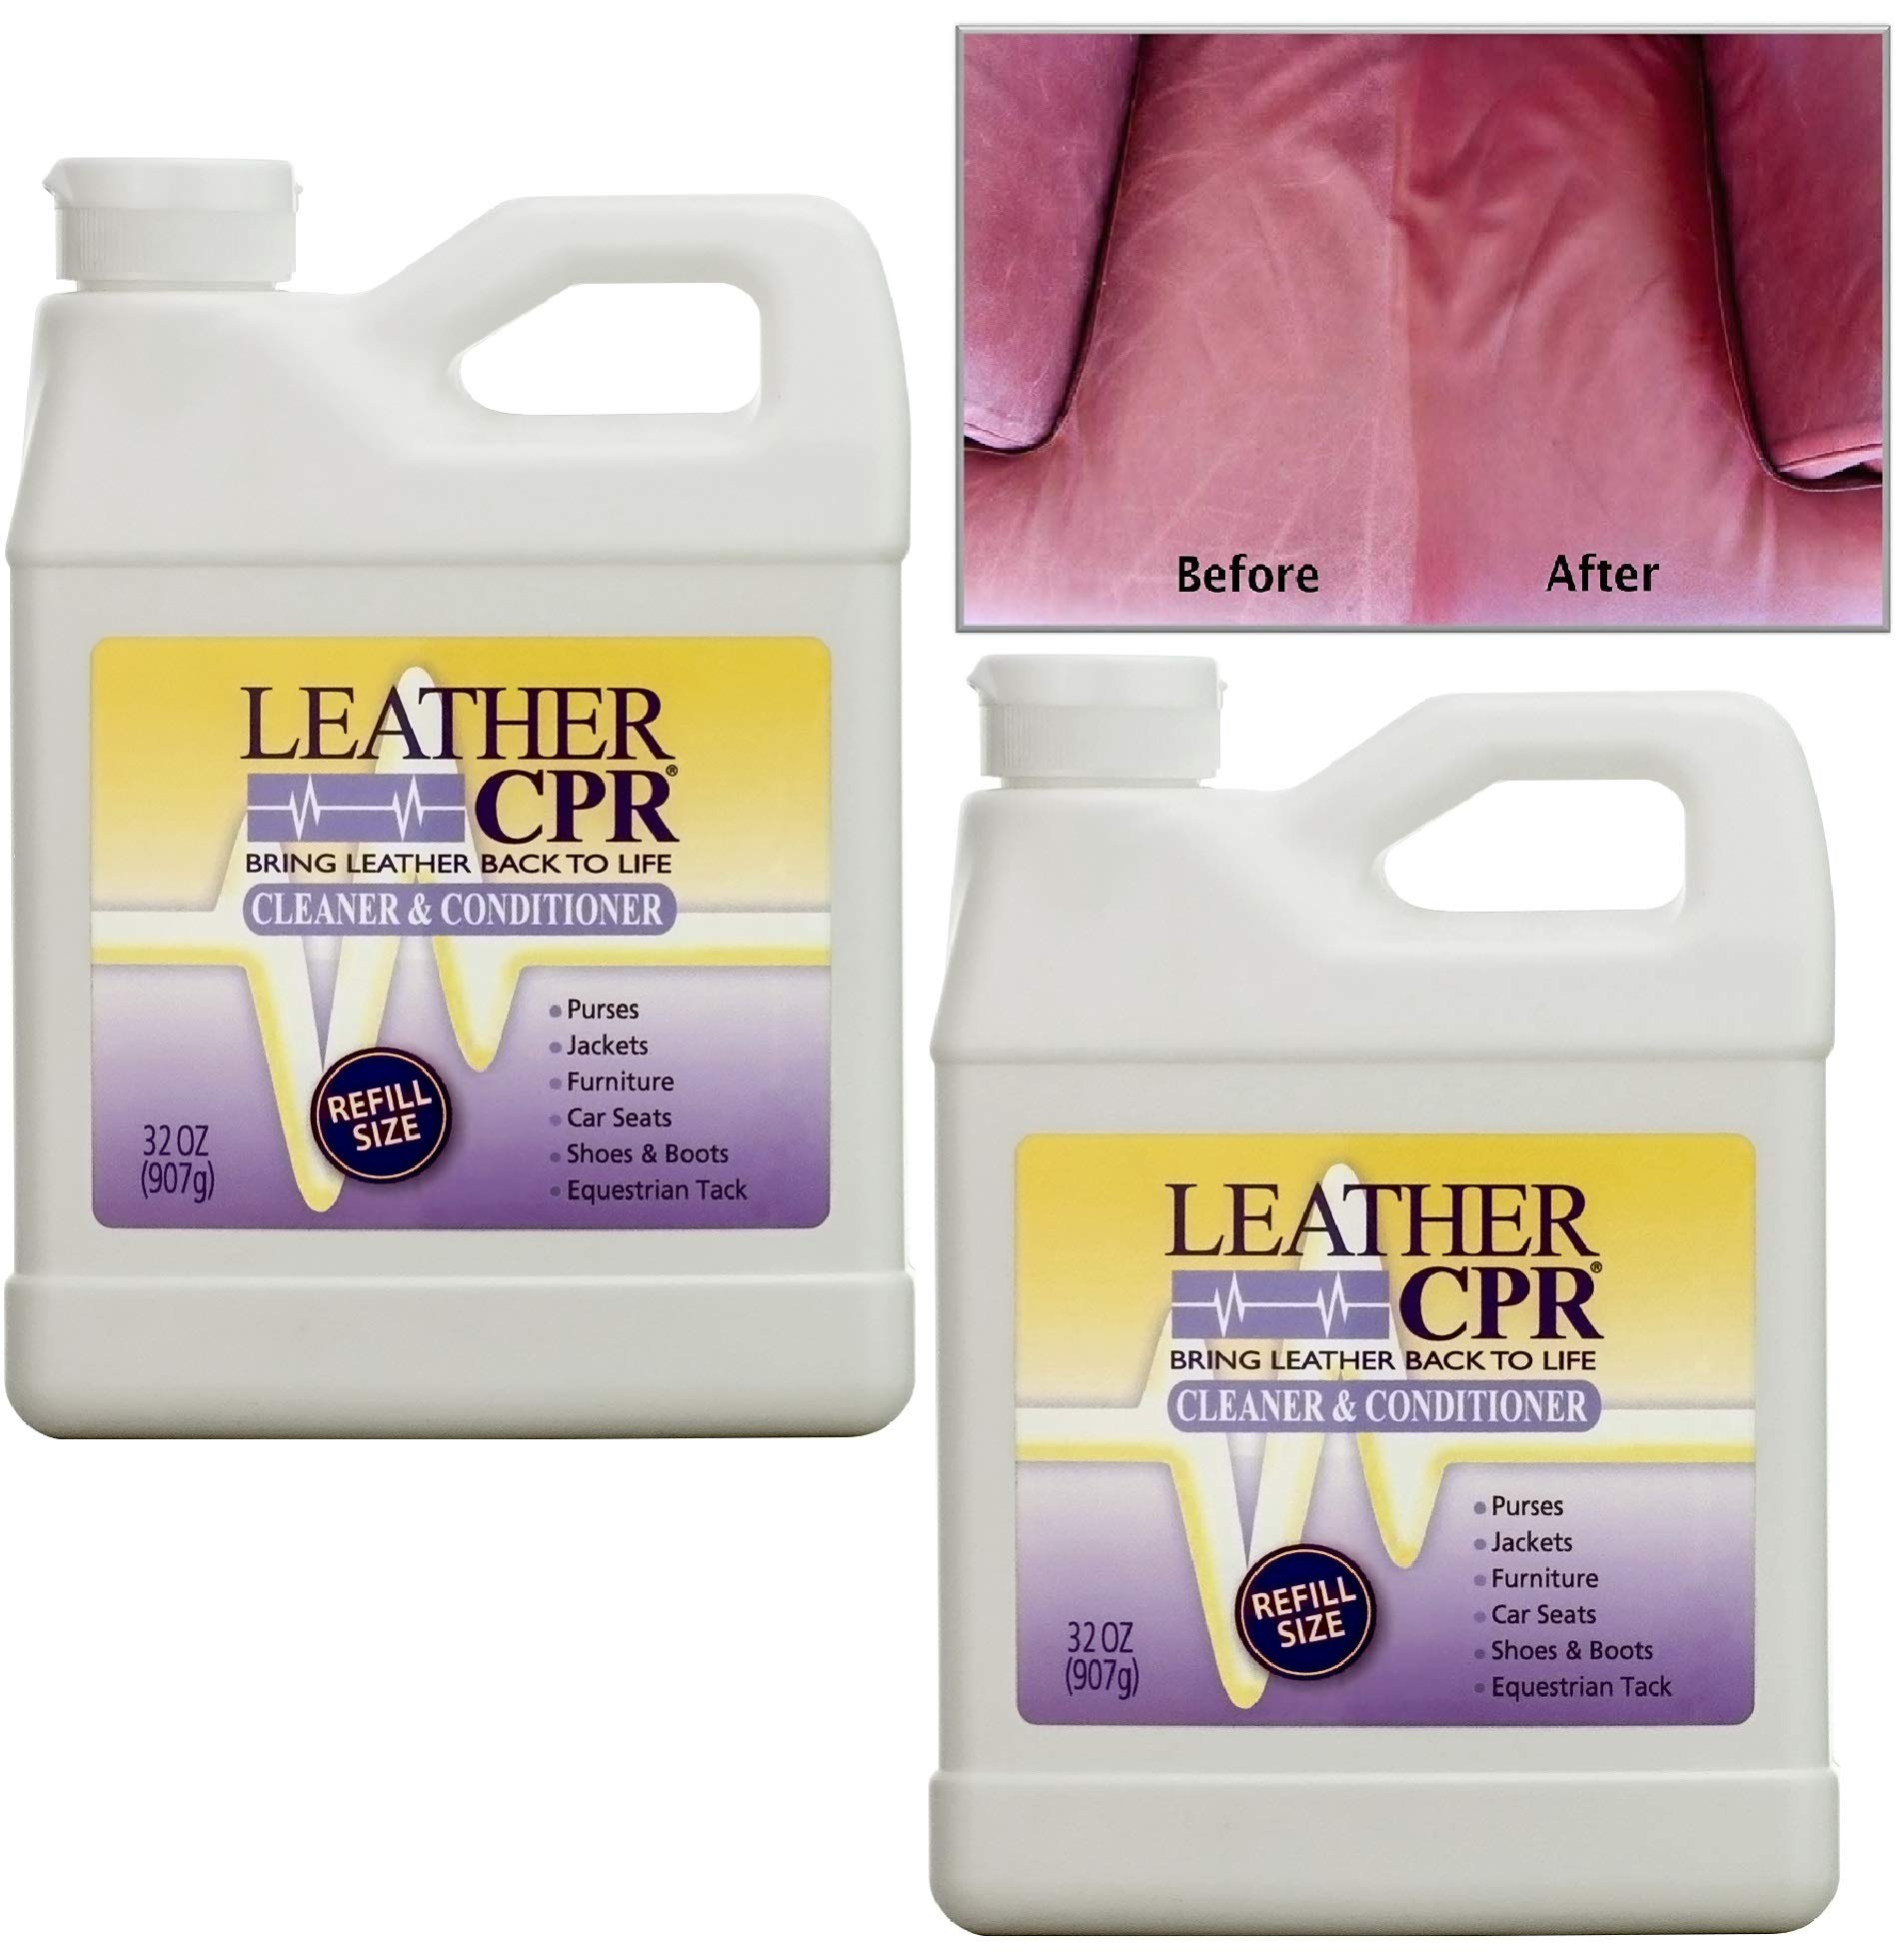 Leather CPR (2PK / 32oz Bottles) - Dermatologist Tested & 100% Irritant-Free Leather Cleaner & Conditioner for Your Home - Works Wonders on Furniture, Jackets, Shoes, Auto & More by CPR Cleaning Products